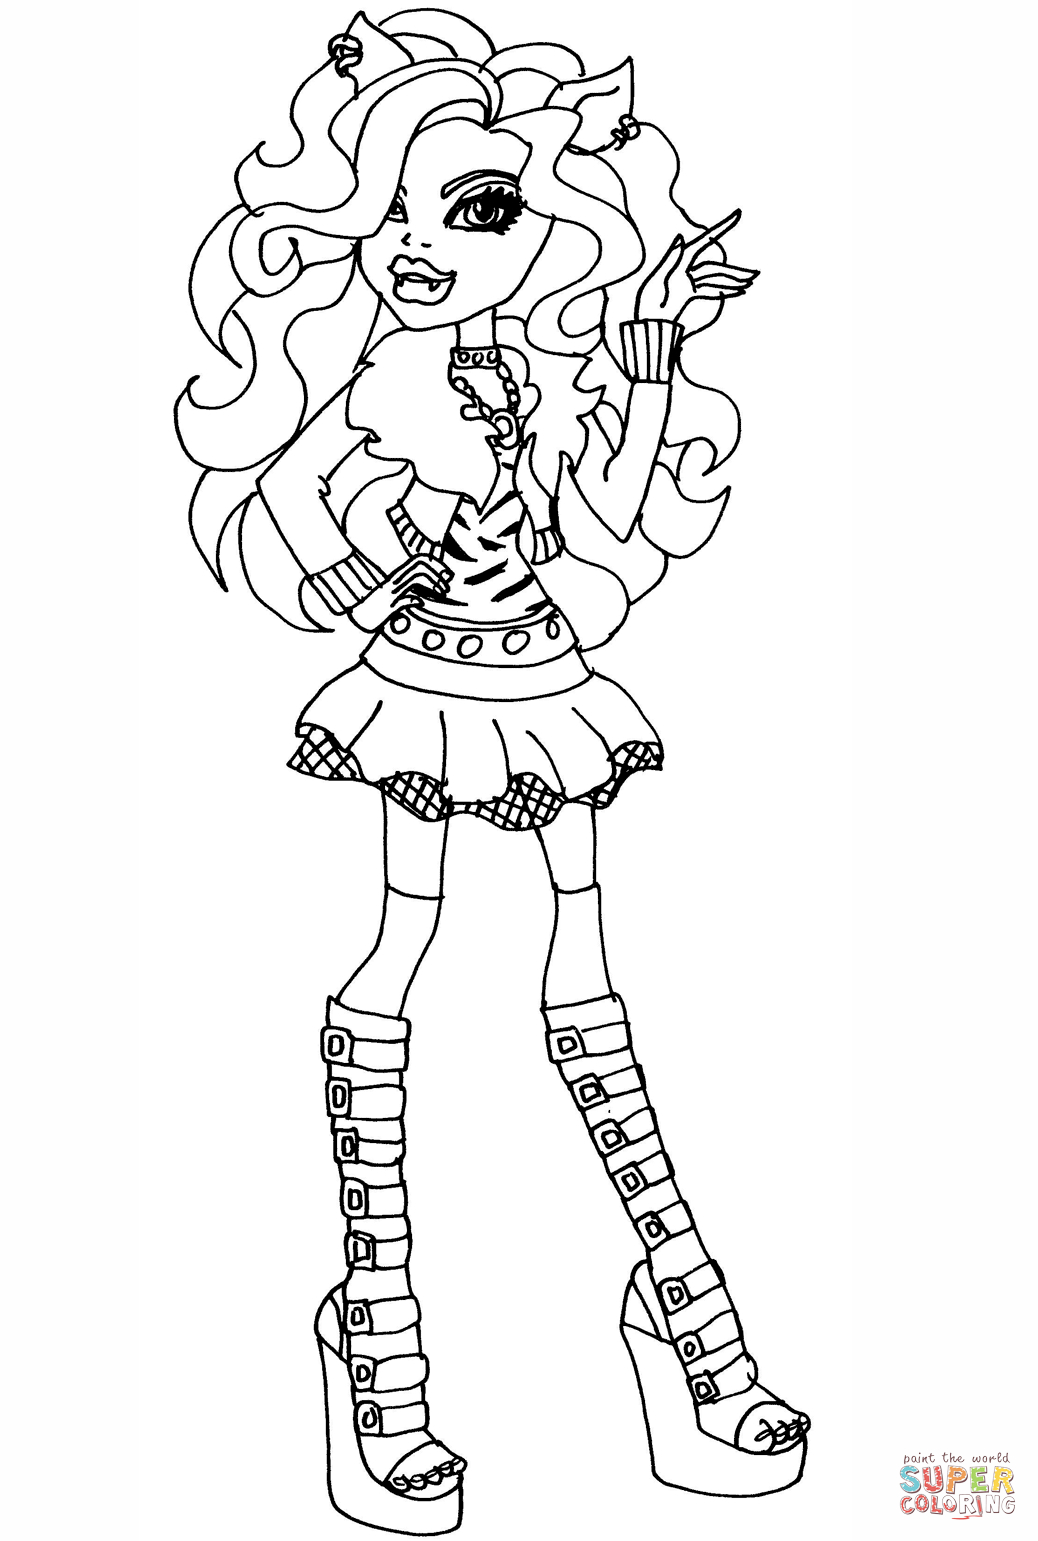 Monster High Clawdeen Wolf Coloring Page | Free Printable Coloring Pages - Monster High Free Printable Pictures